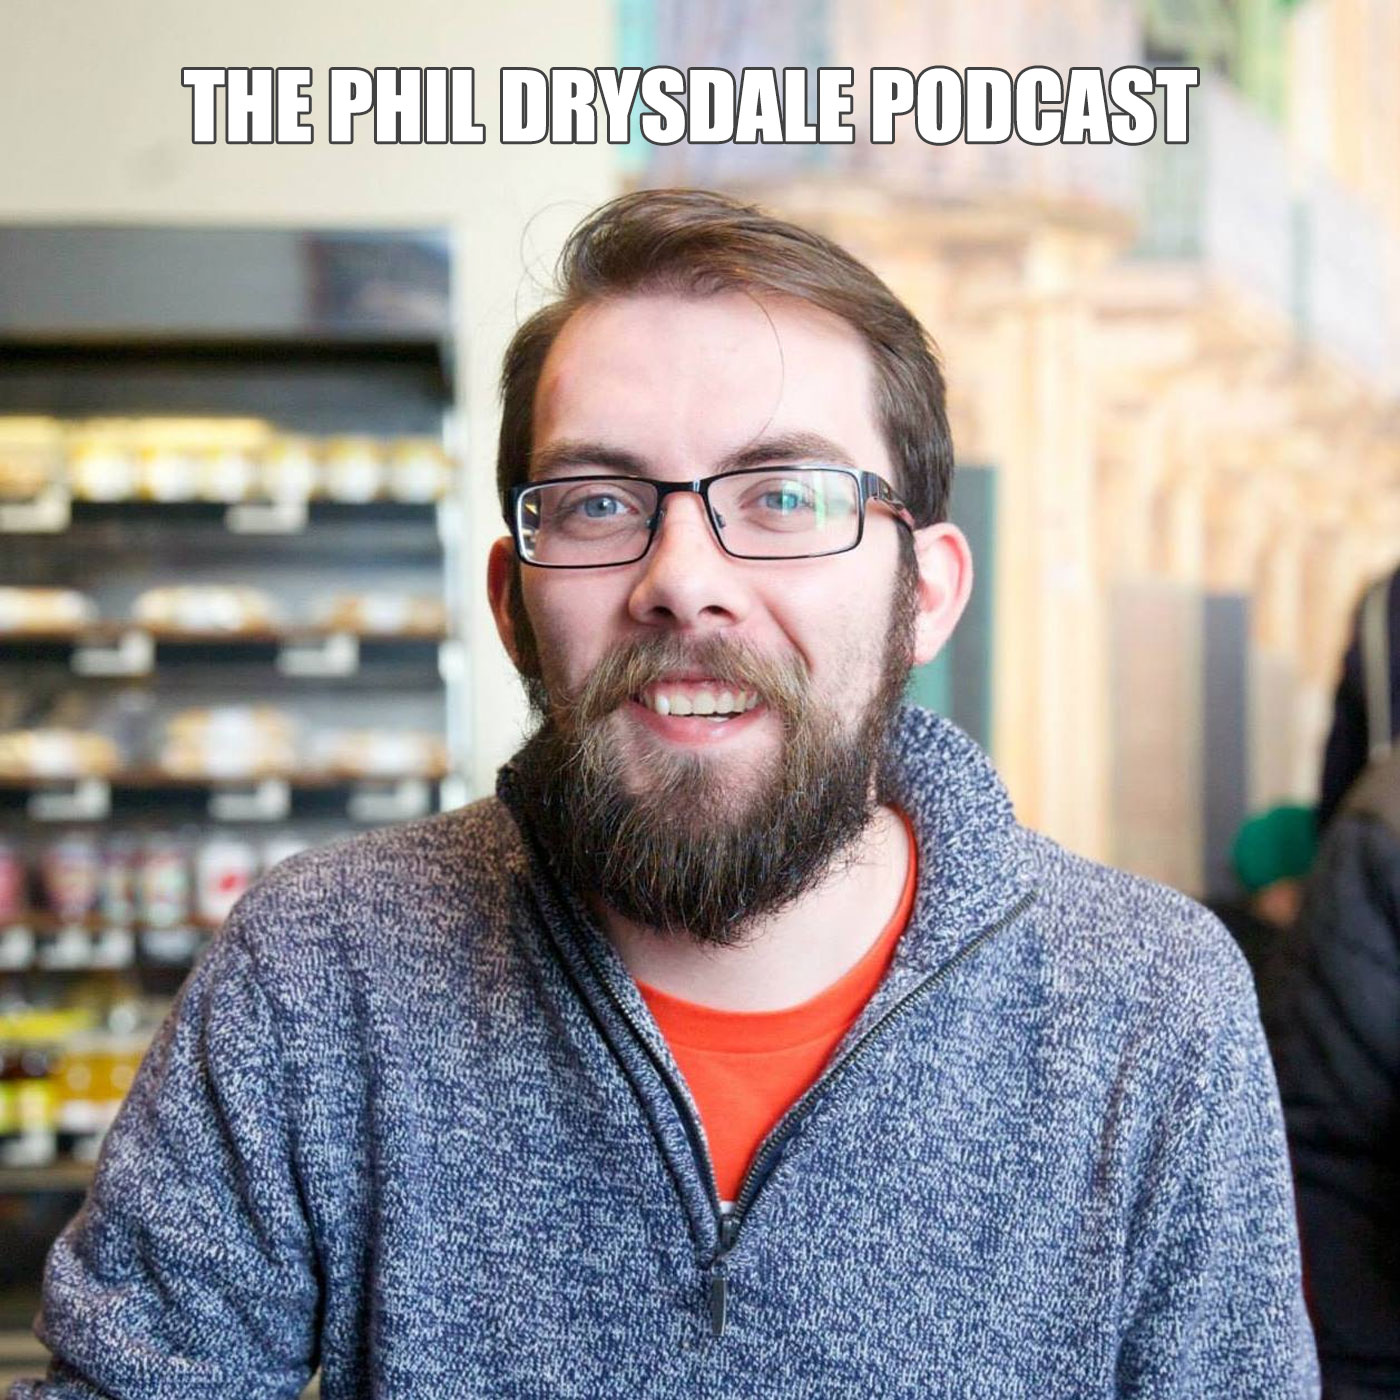 The Phil Drysdale Podcast